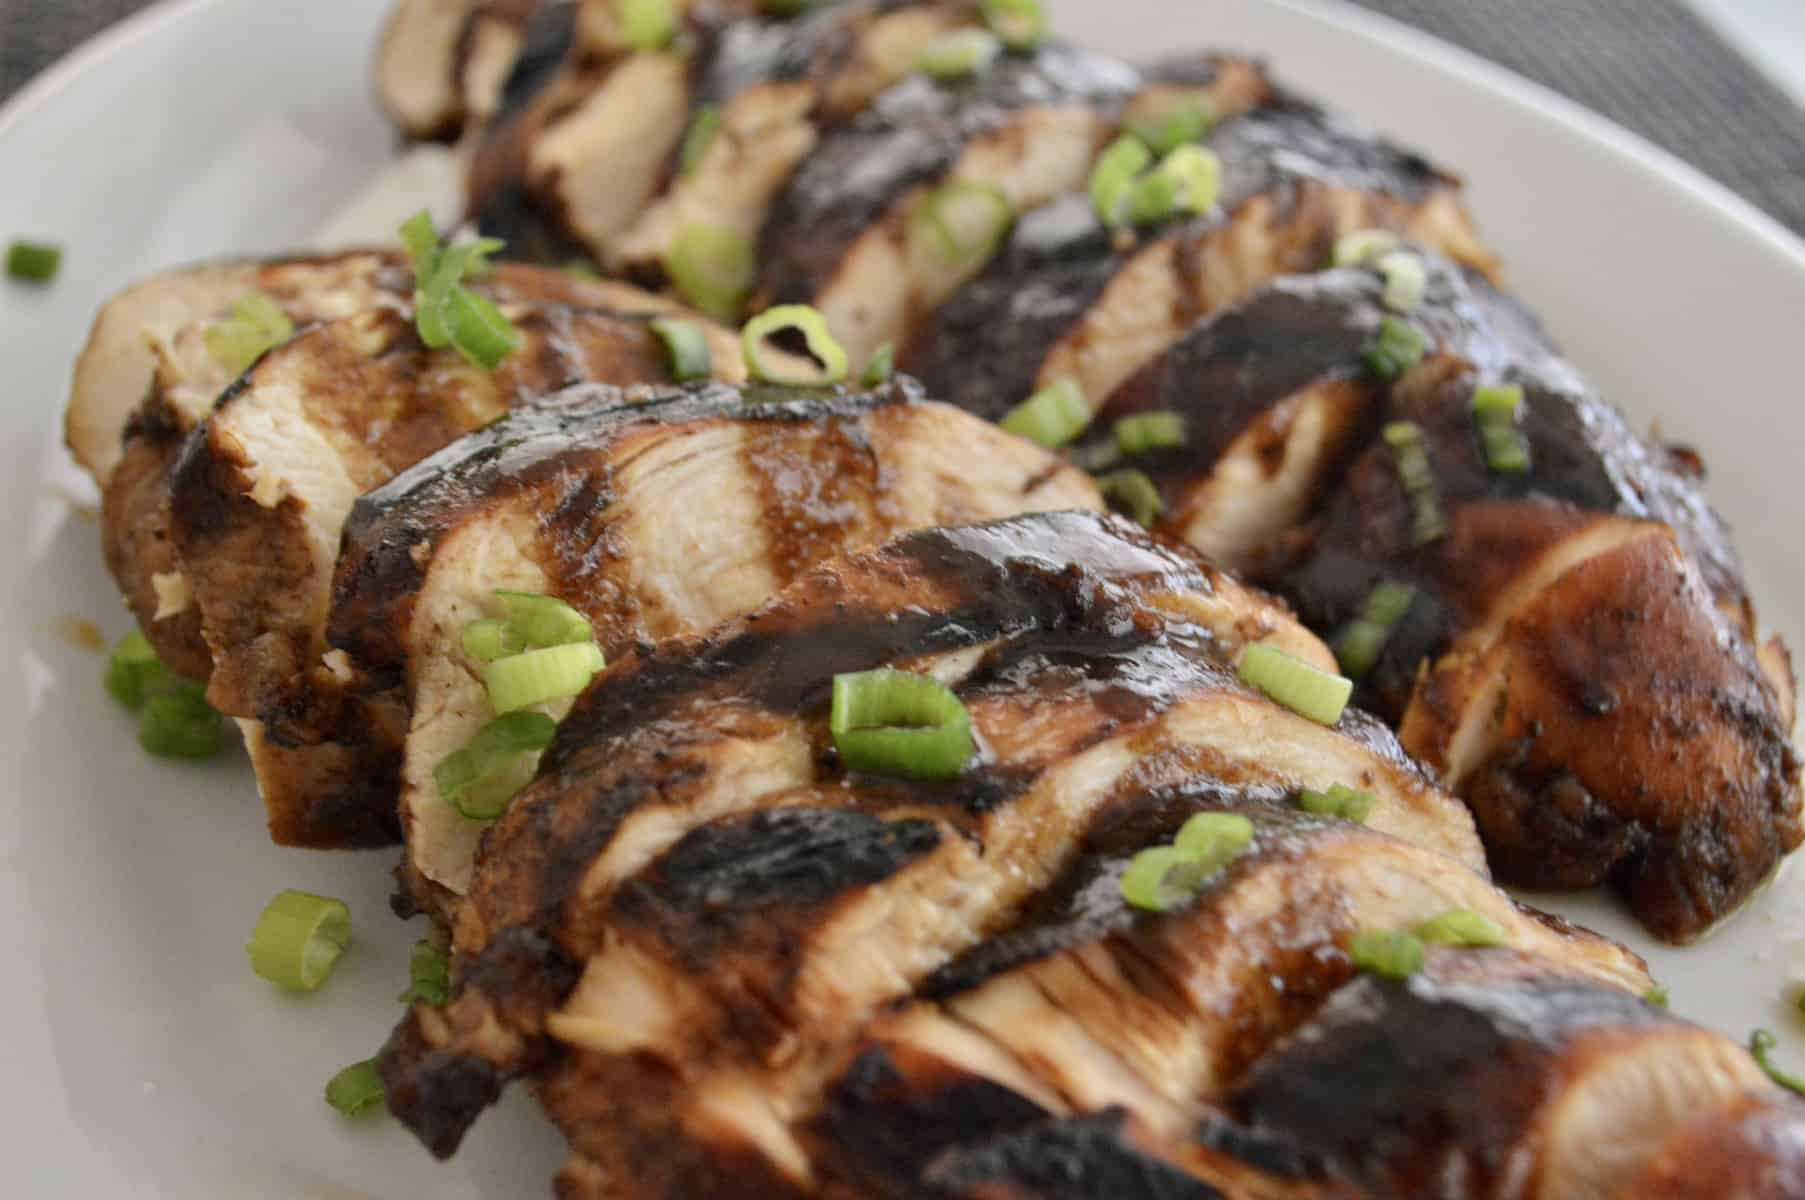 Marinated Chicken with Balsamic and Brown Sugar Glaze